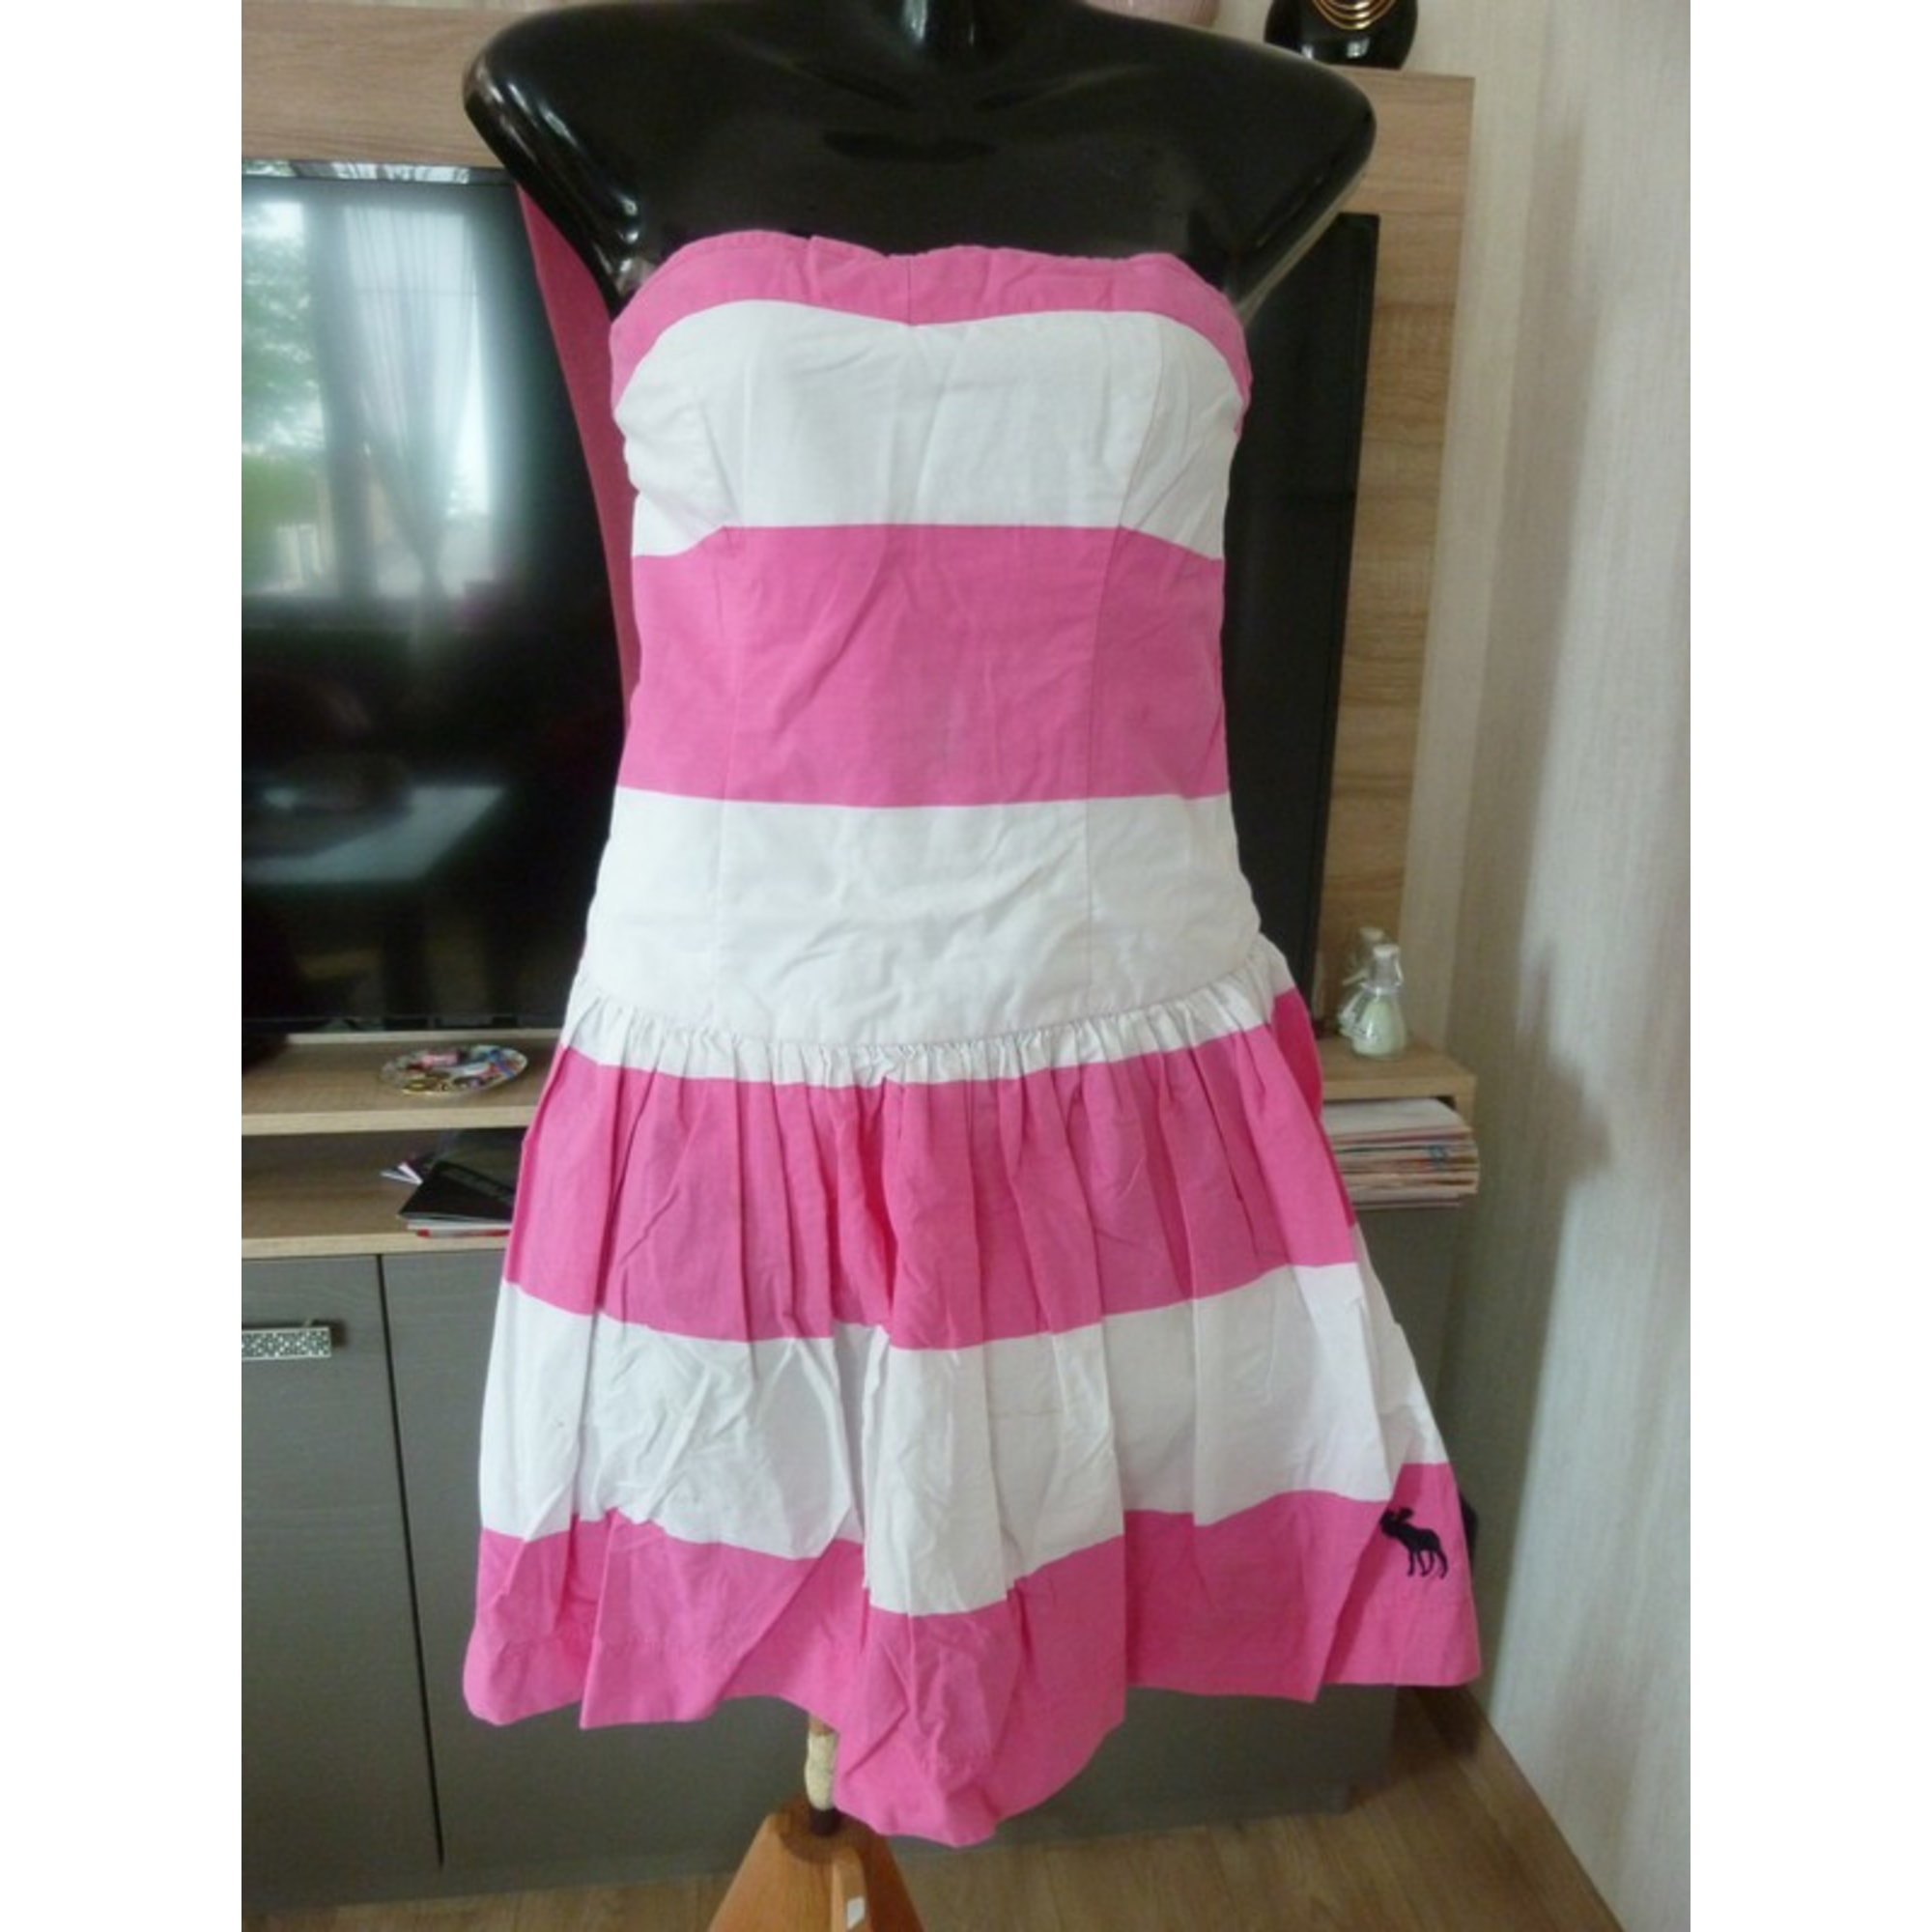 Robe bustier ABERCROMBIE & FITCH Rose, fuschia, vieux rose